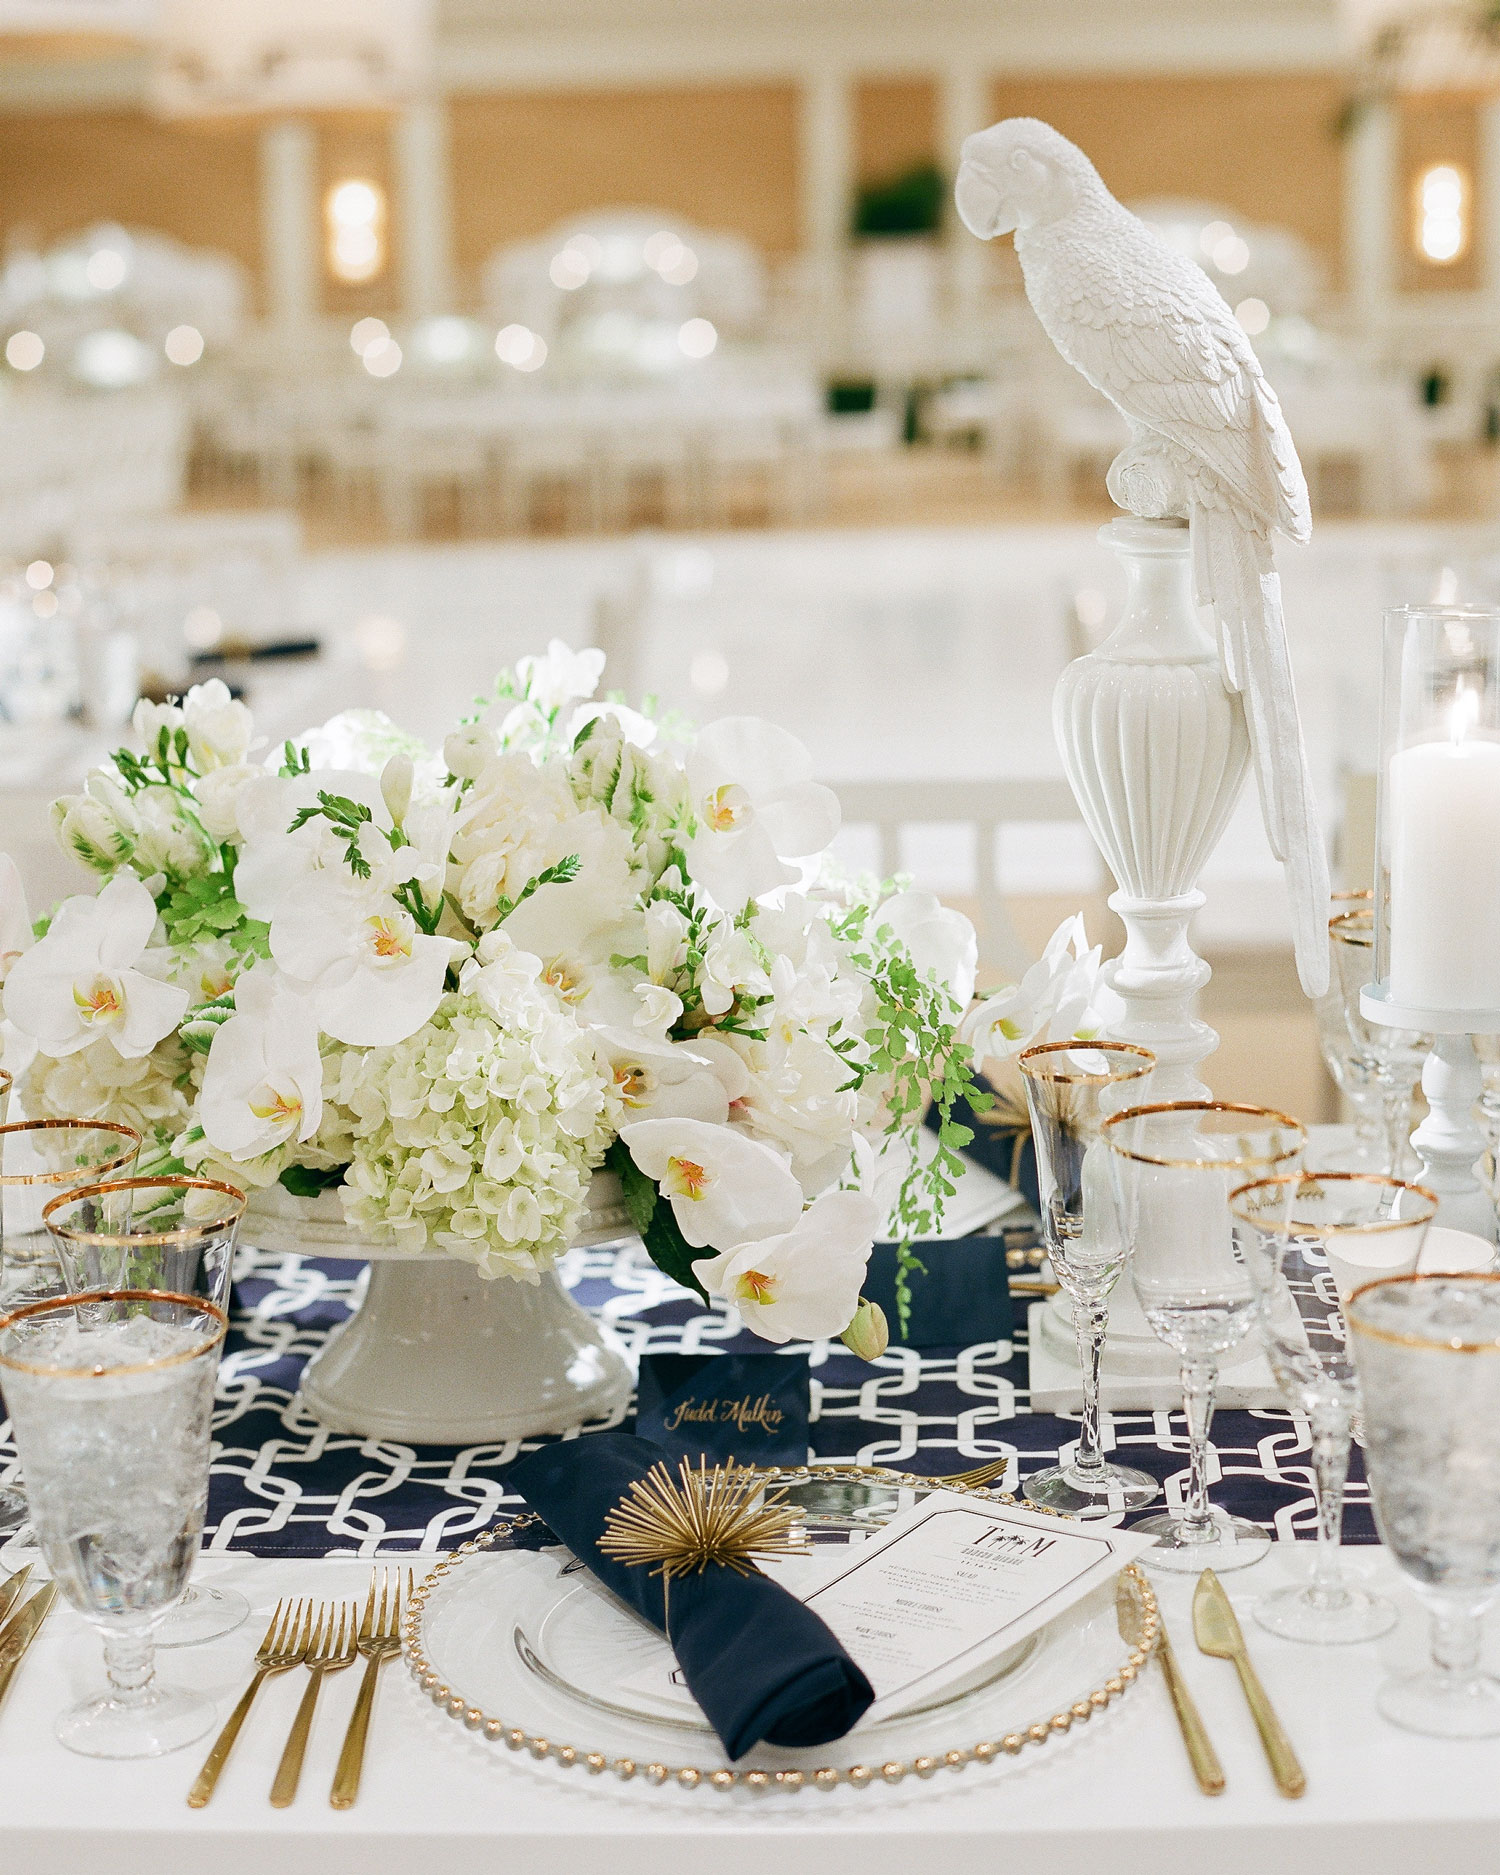 tali-mike-wedding-california-placesetting-parrot-58950015-s112346.jpg